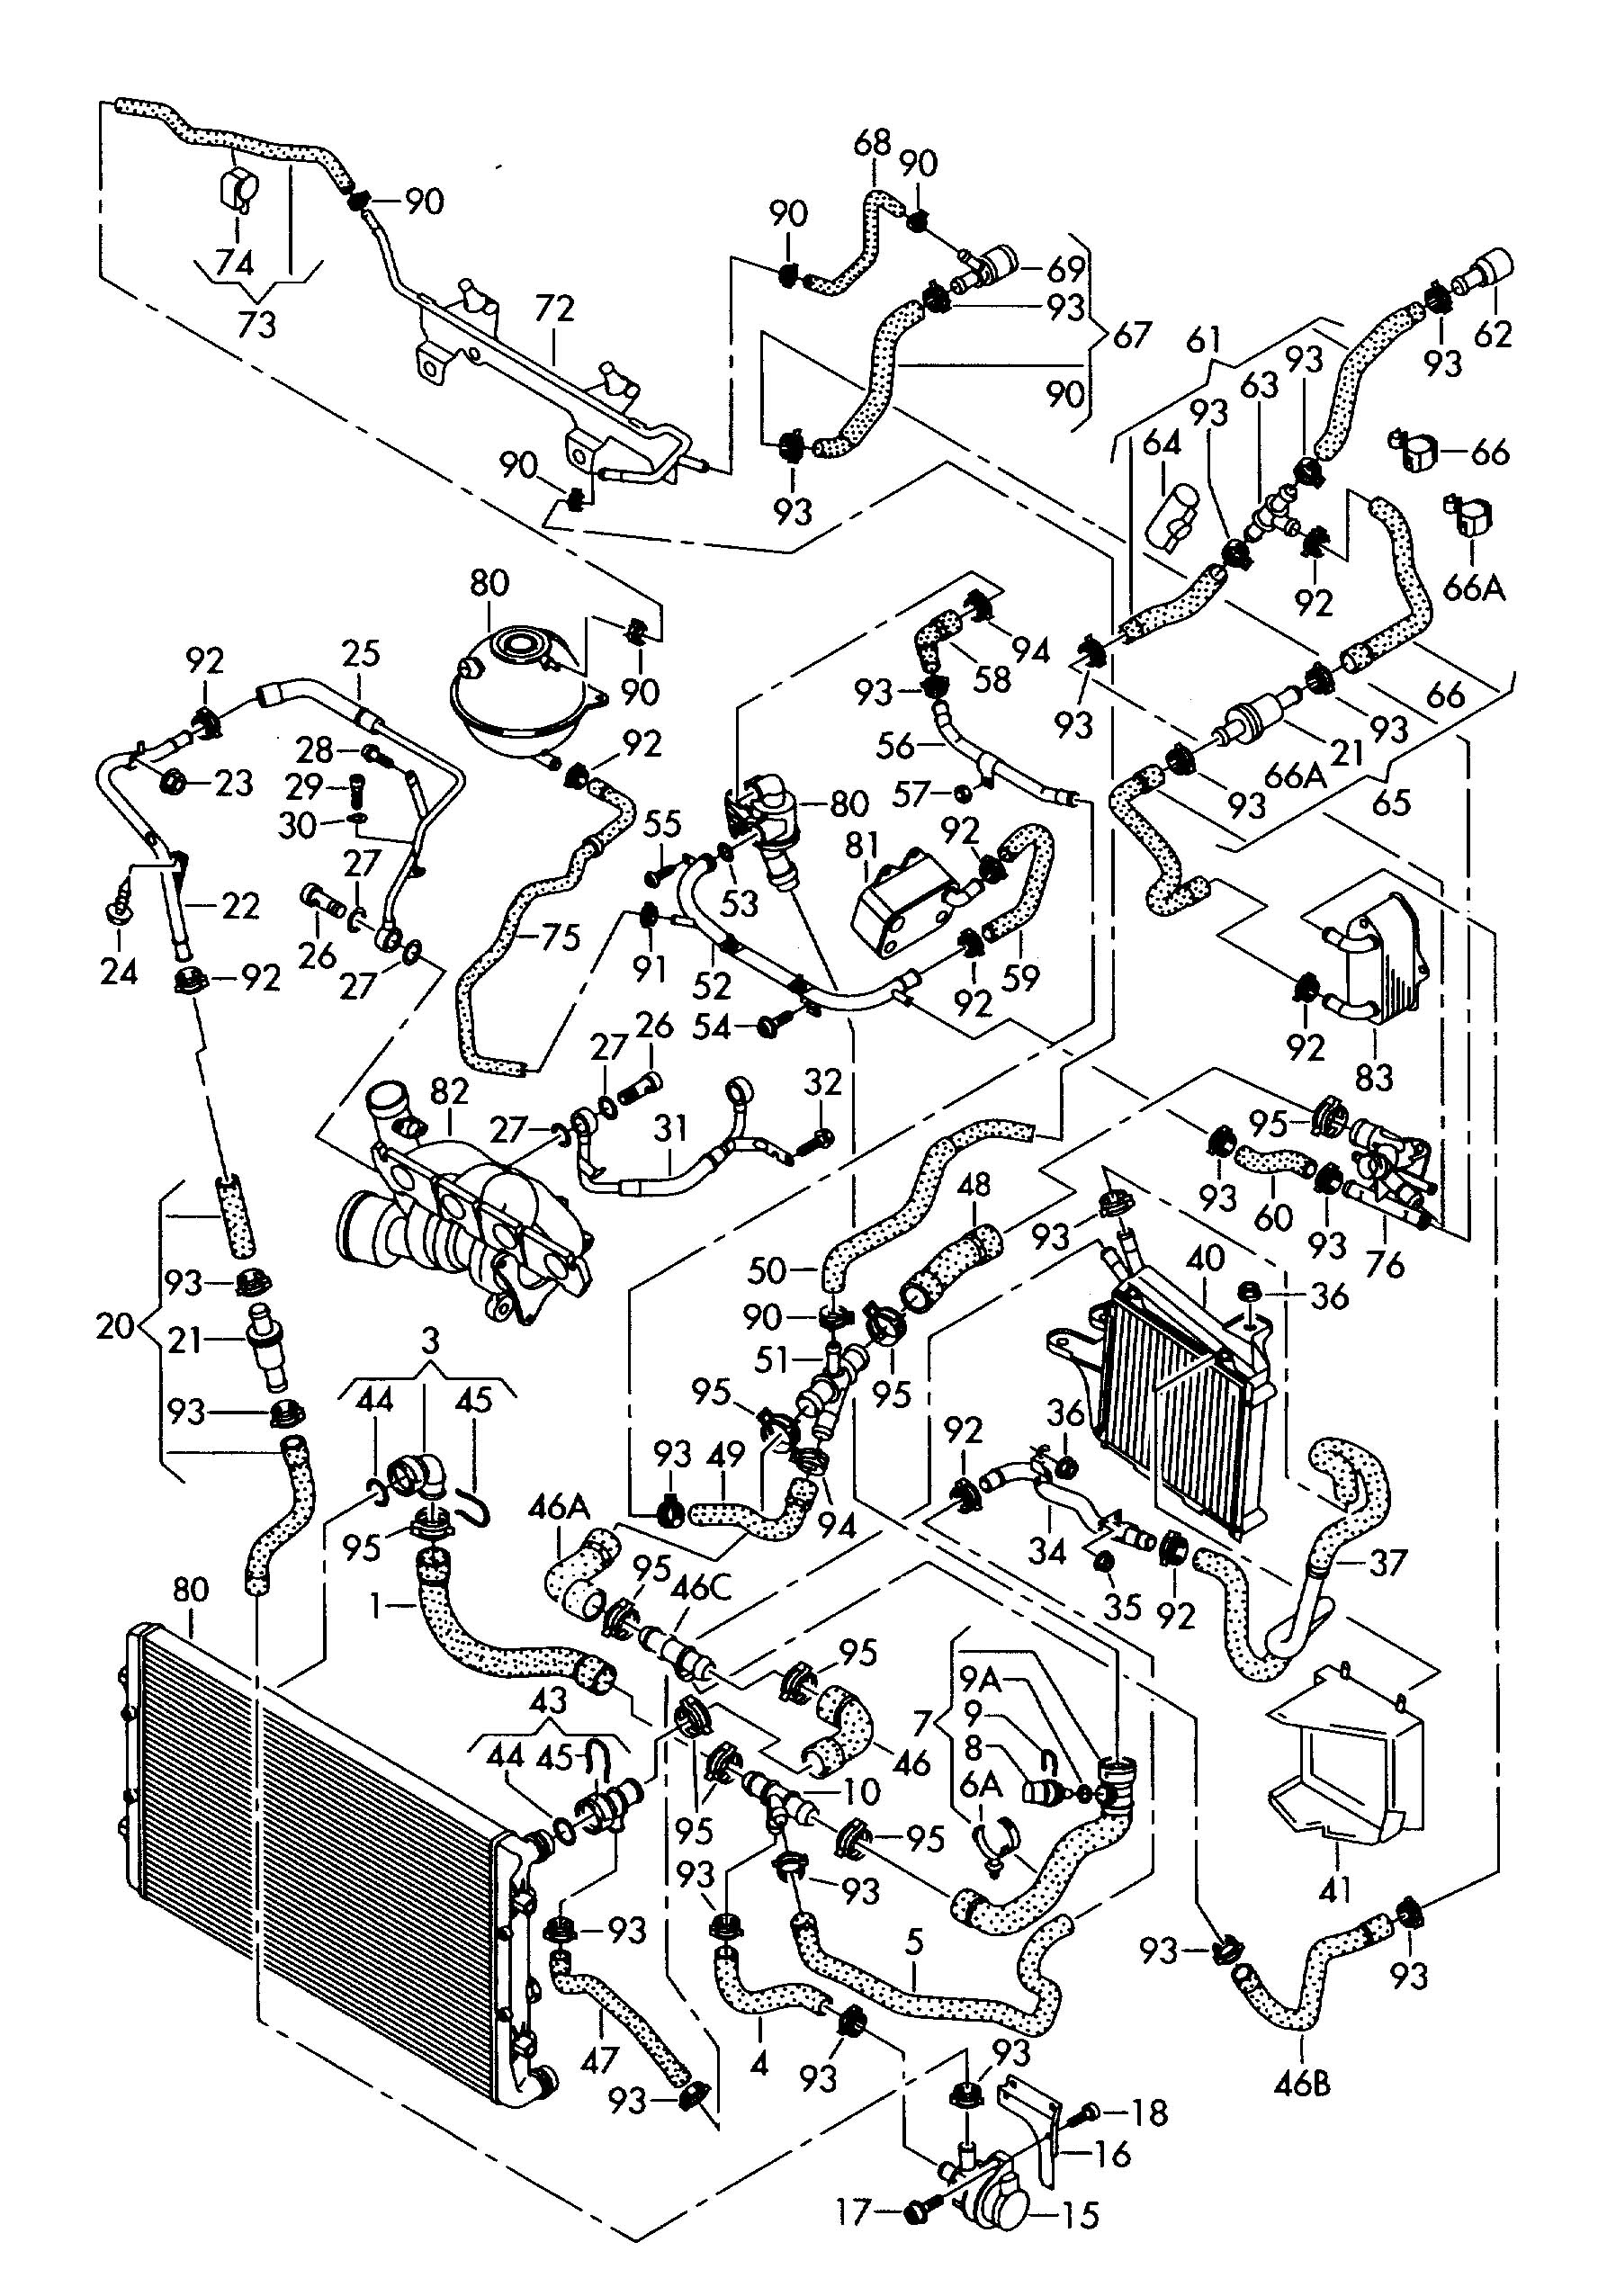 28 2001 Vw Beetle Cooling System Diagram